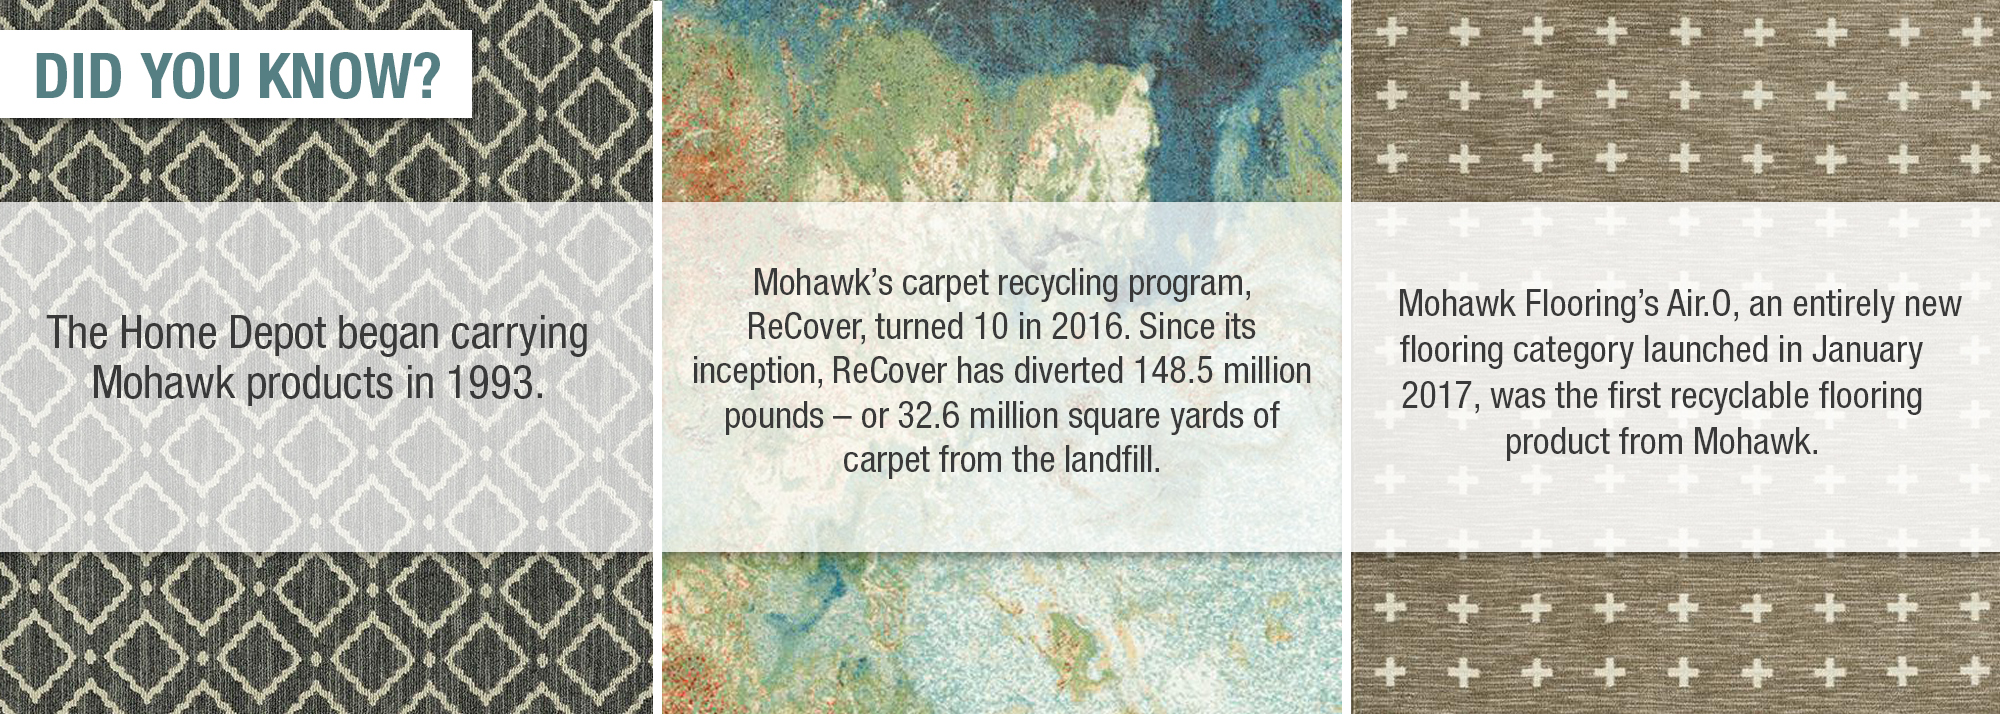 Mohawk Industries did you know facts